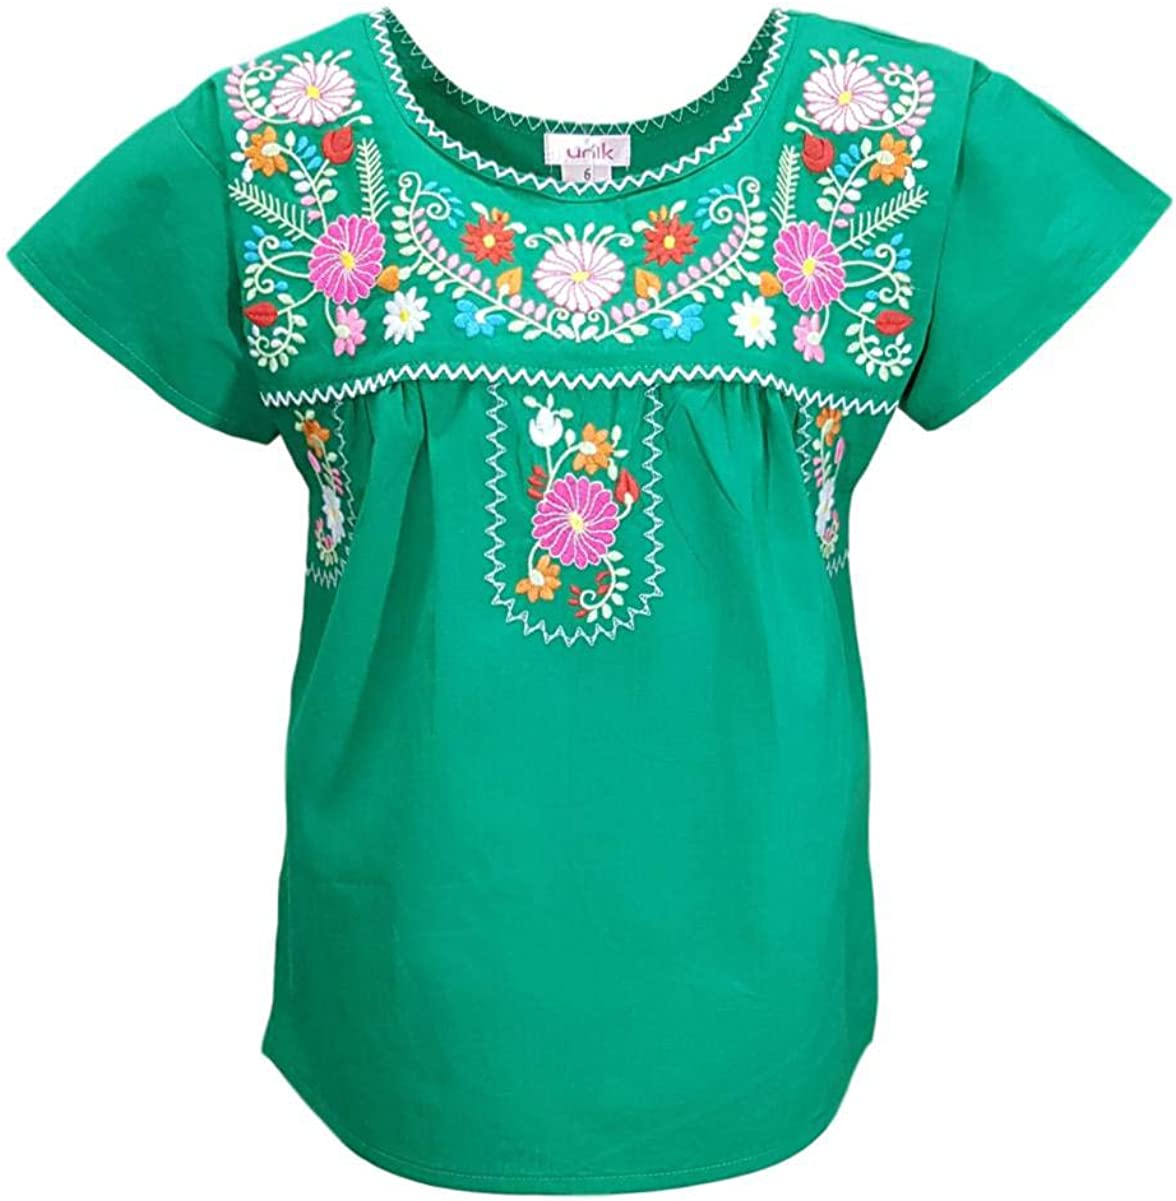 Oaxaca Style embroidered Blouse Pink Mexican Blouse With Turquoise Silk Thread Floral Embroidery Mexican Traditional Blouse